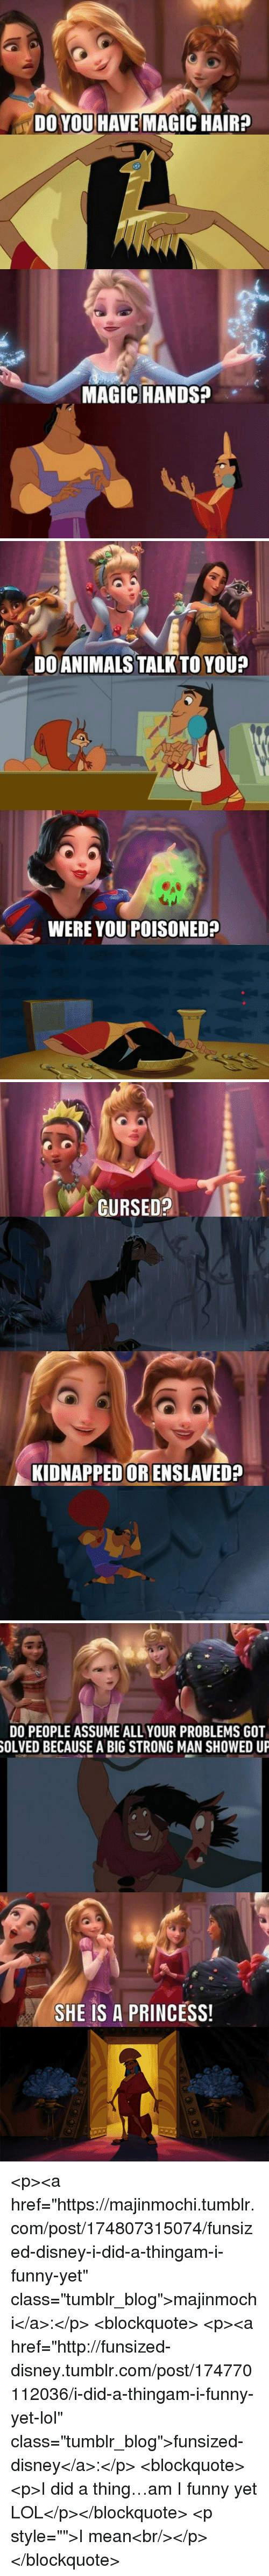 """Disney, Funny, and Lol: DO YOU HAVE MAGIC HAIR?  MAGIC HANDSA   DOANIMALSTALKTO YOUP  WERE YOU POISONED?   CURSED?  KIDNAPPEDOR ENSLAVED?   DO PEOPLE ASSUME ALL YOUR PROBLEMS GOT  OLVED BECAUSE A BIG STRONG MAN SHOWED UP  SHE IS A PRINCESS! <p><a href=""""https://majinmochi.tumblr.com/post/174807315074/funsized-disney-i-did-a-thingam-i-funny-yet"""" class=""""tumblr_blog"""">majinmochi</a>:</p> <blockquote> <p><a href=""""http://funsized-disney.tumblr.com/post/174770112036/i-did-a-thingam-i-funny-yet-lol"""" class=""""tumblr_blog"""">funsized-disney</a>:</p> <blockquote><p>I did a thing…am I funny yet LOL</p></blockquote> <p style="""""""">I mean<br/></p> </blockquote>"""